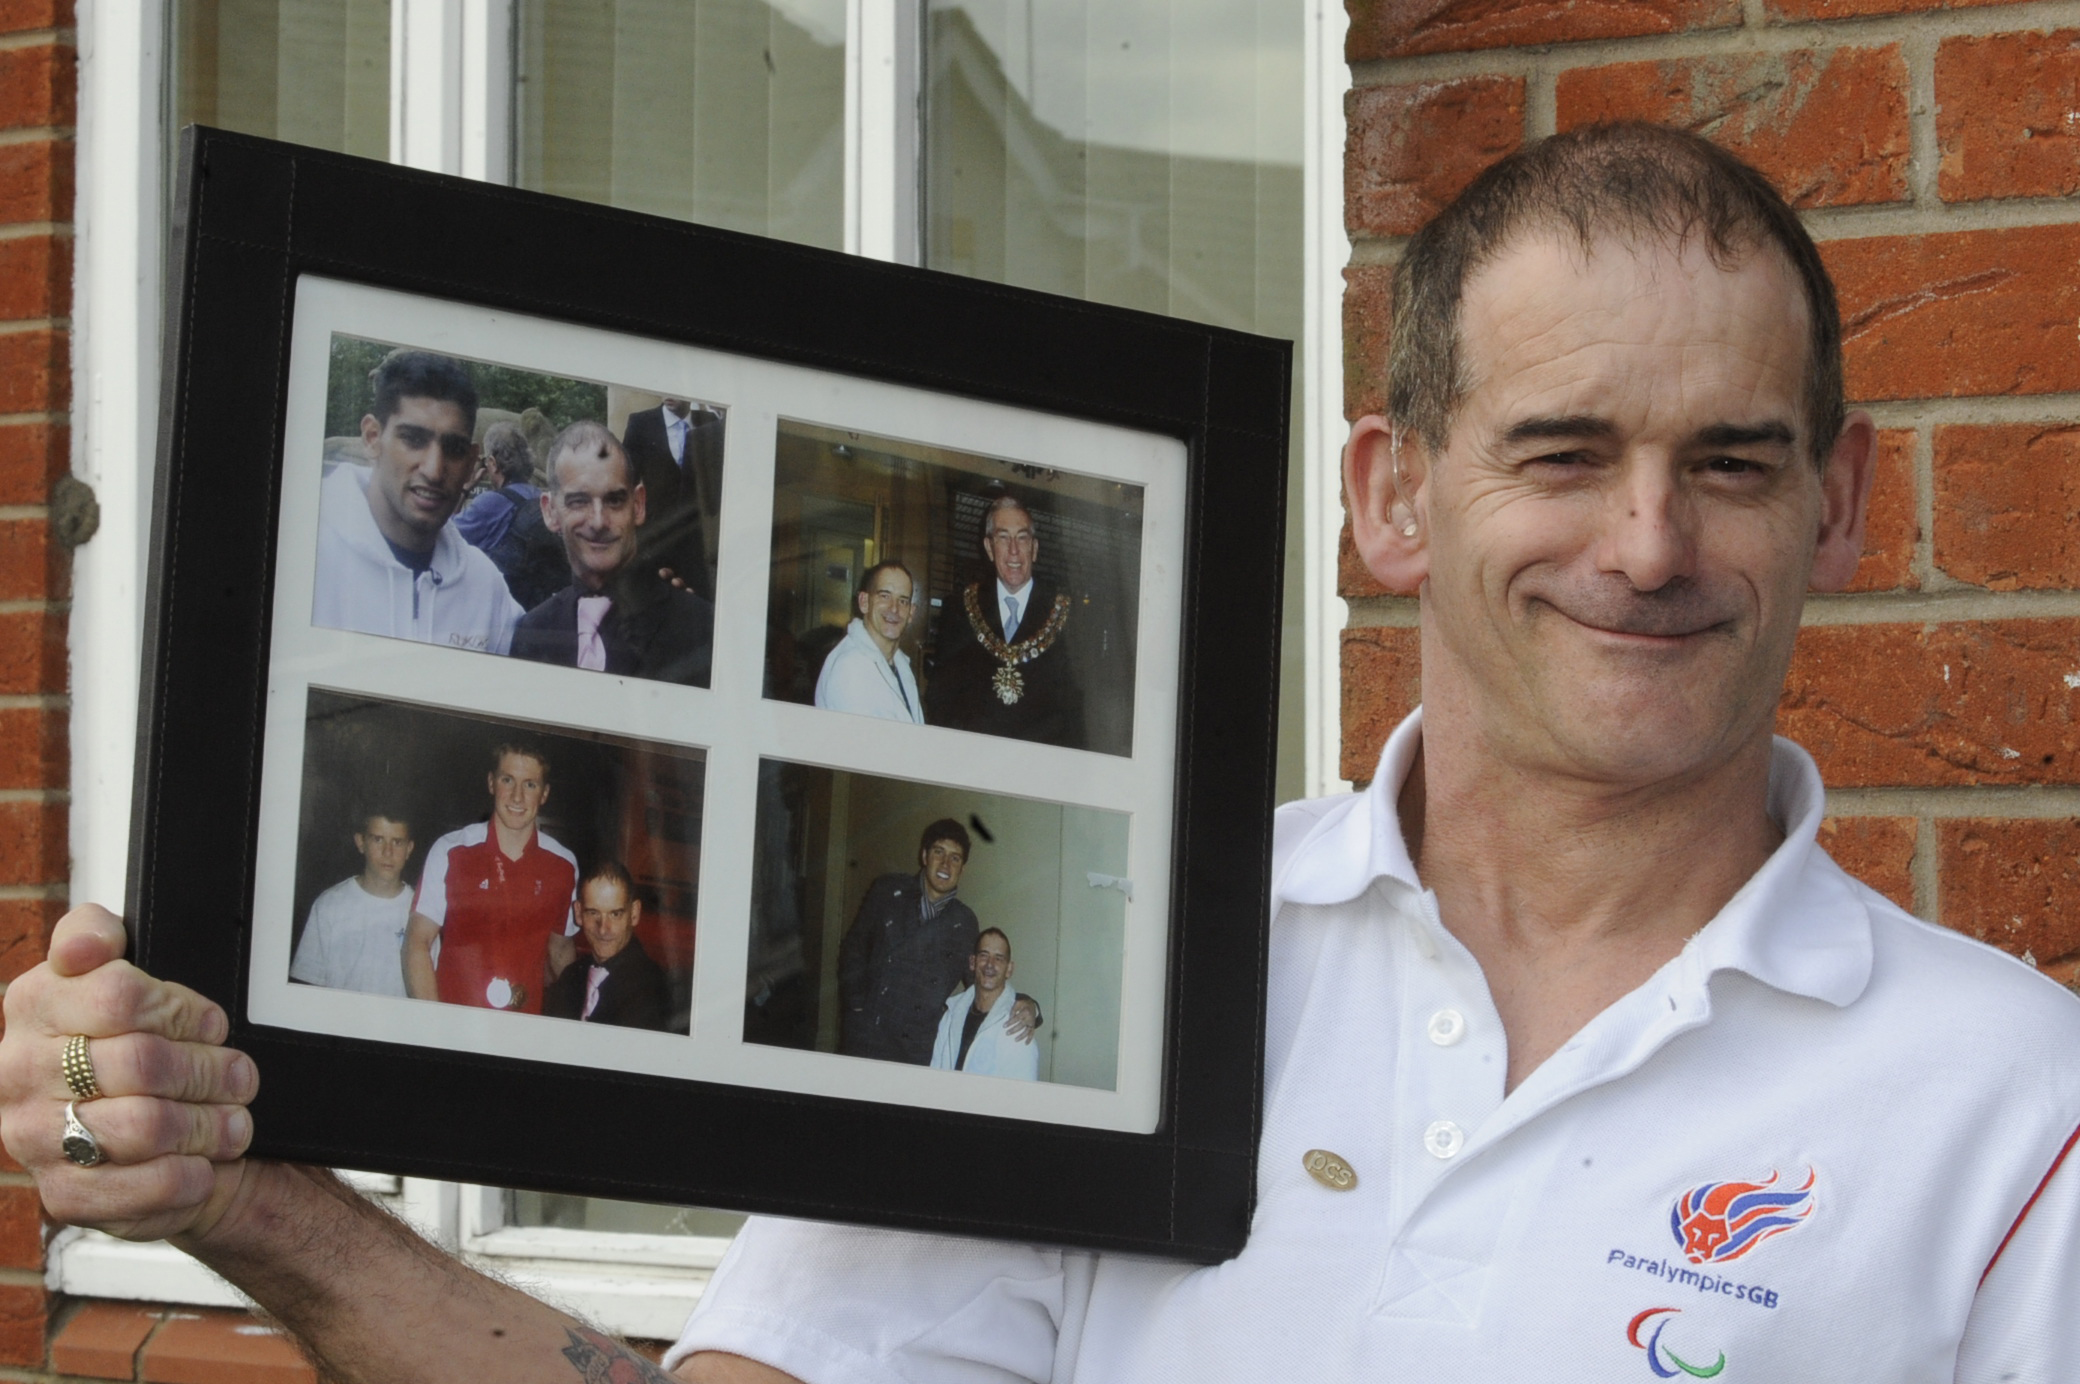 Tony holding a picture of himself with, clockwise, from top left: Amir Khan, the Mayor of Bolton, Cllr Anthony Connell, Vernon Kay and Jason Kenny